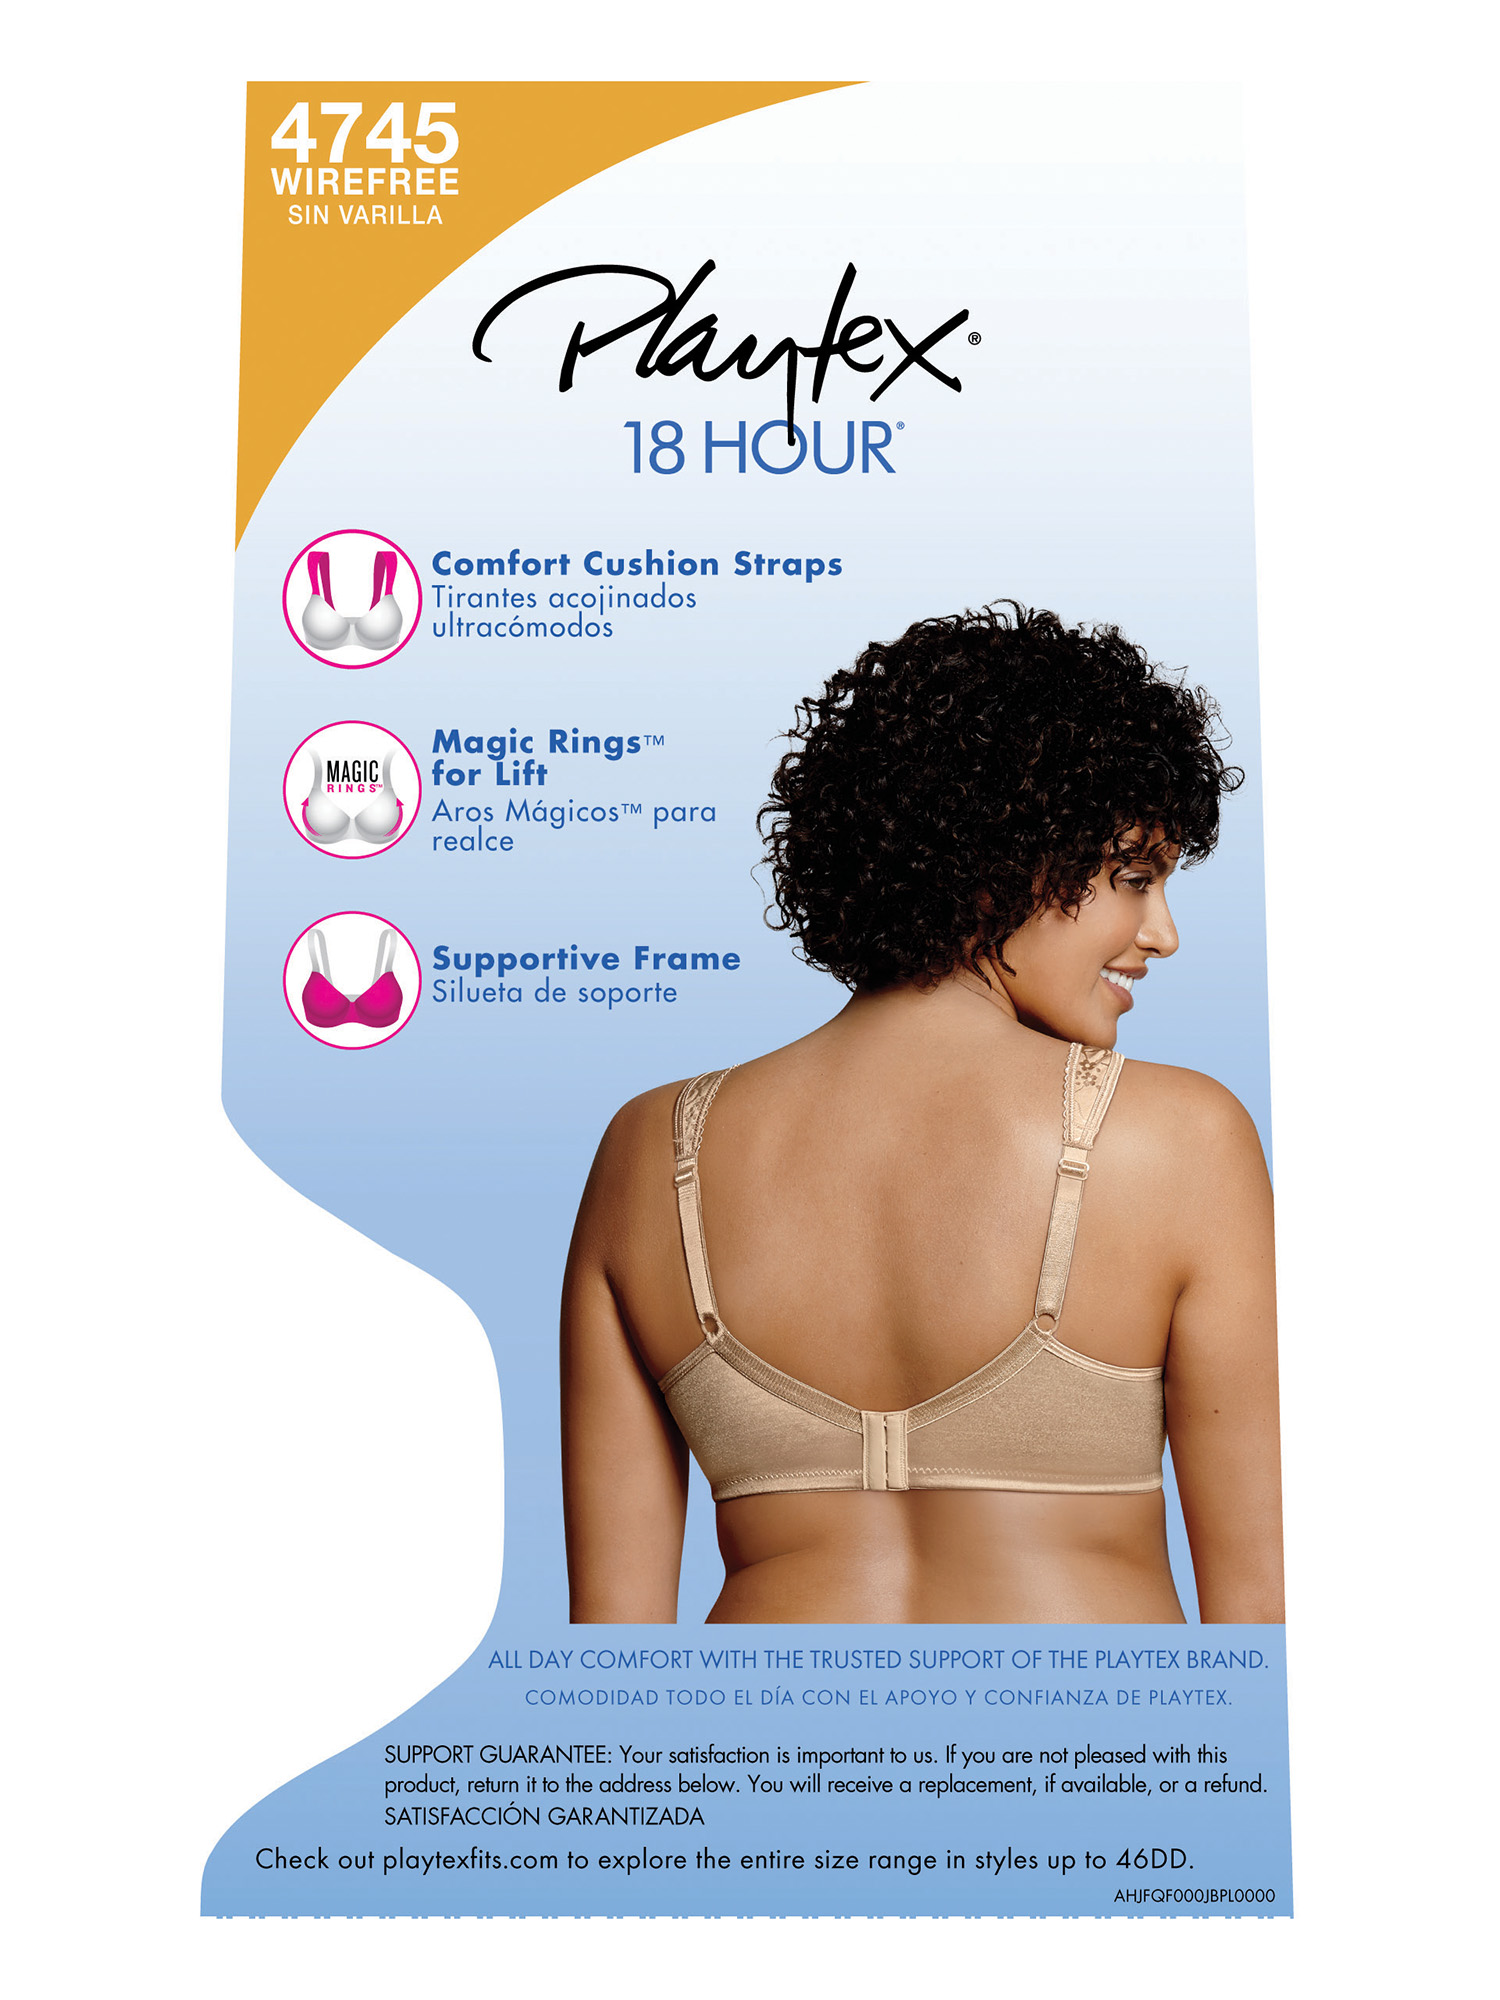 18 Hour Ultimate Lift and Support Wireless Bra, Style 4745 - Walmart.com